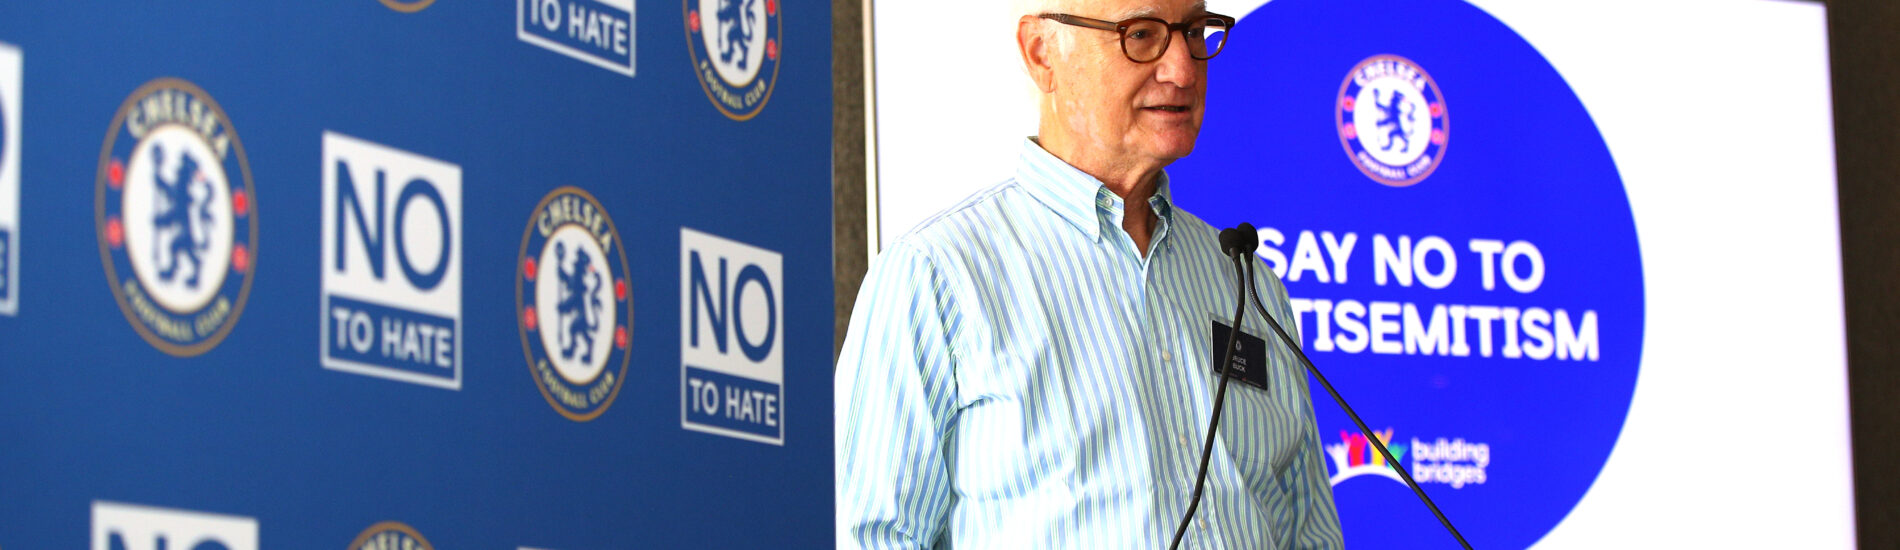 Chelsea Foundation host breakfast event to discuss the rise in antisemitism